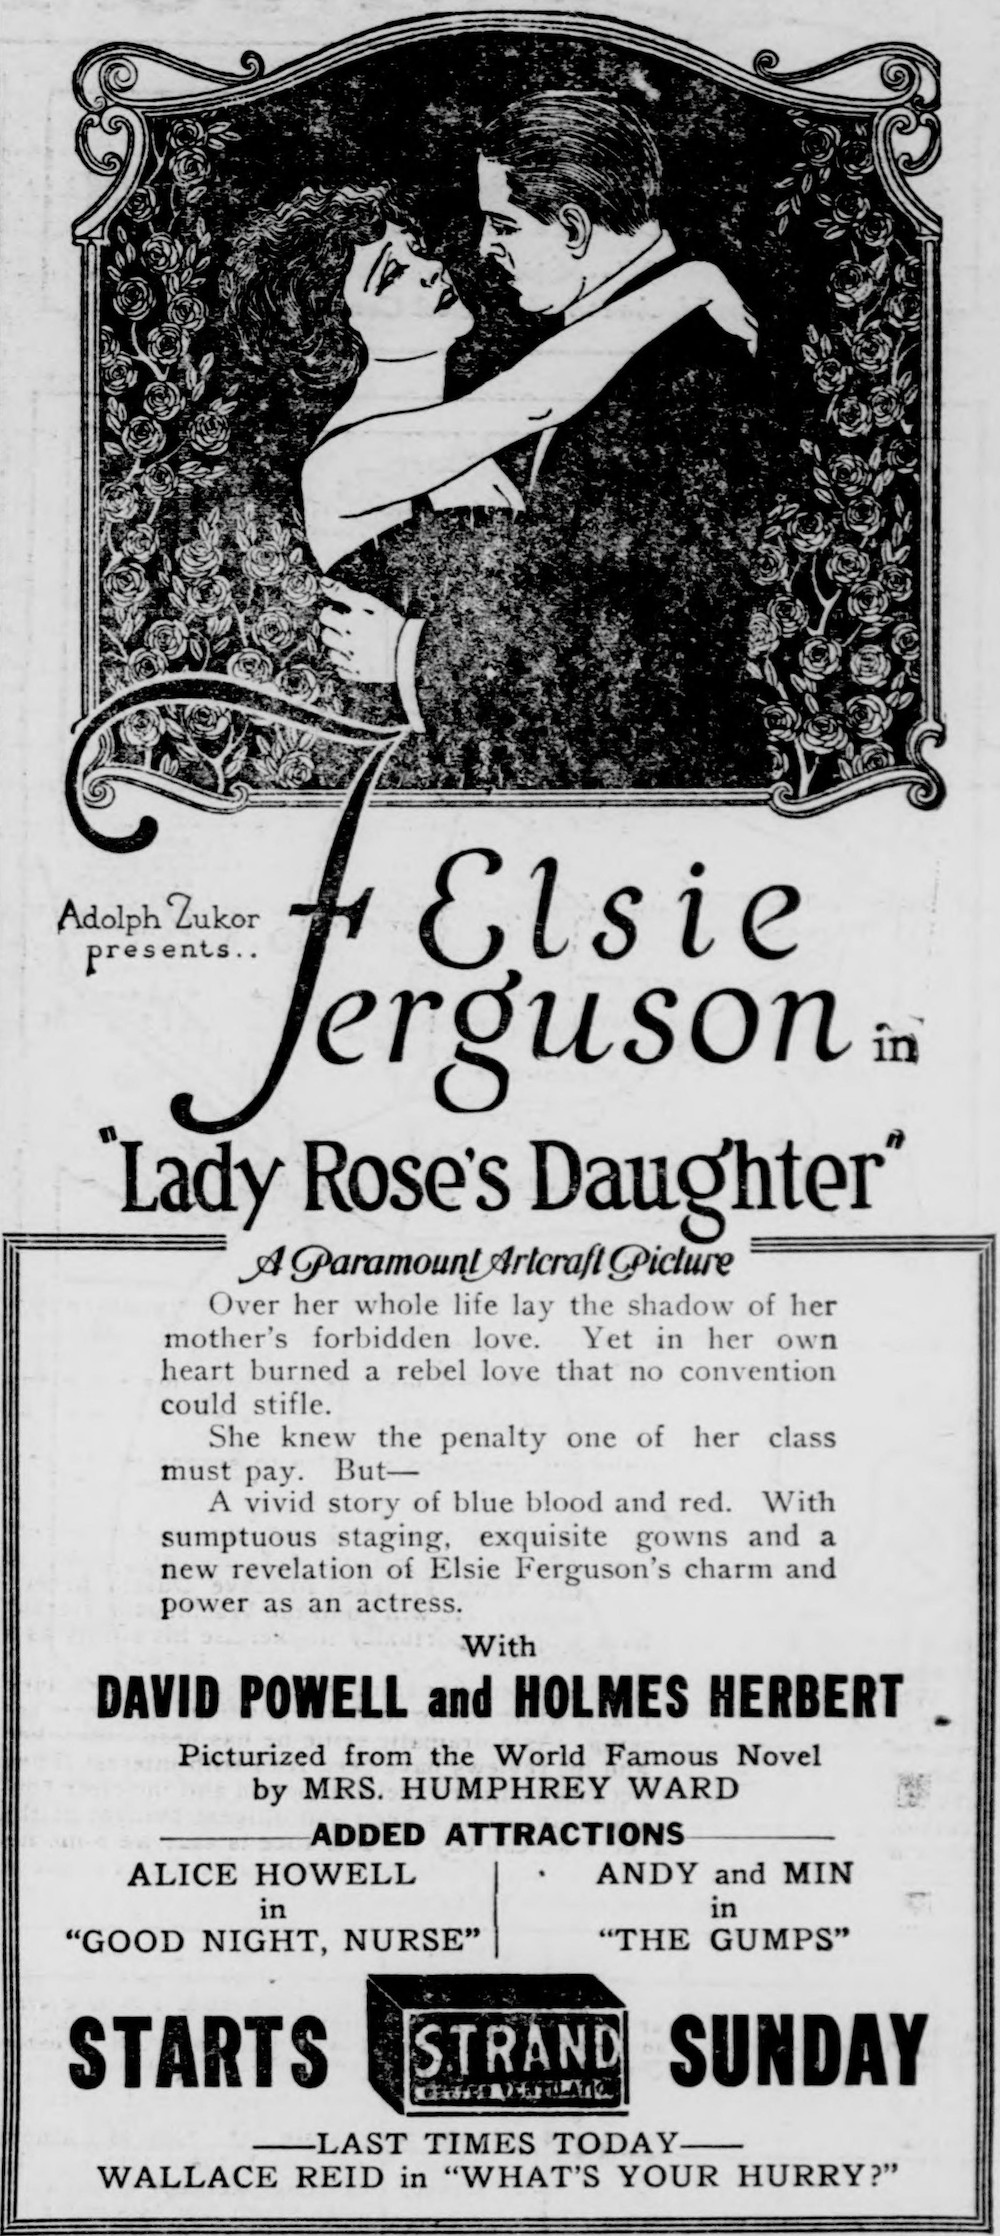 A newspaper advertisement for the film Lady Rose's Daughter. A drawing of a man and a woman embracing below which it reads, in large text, Elsie Ferguson in Lady Rose's Daughter.